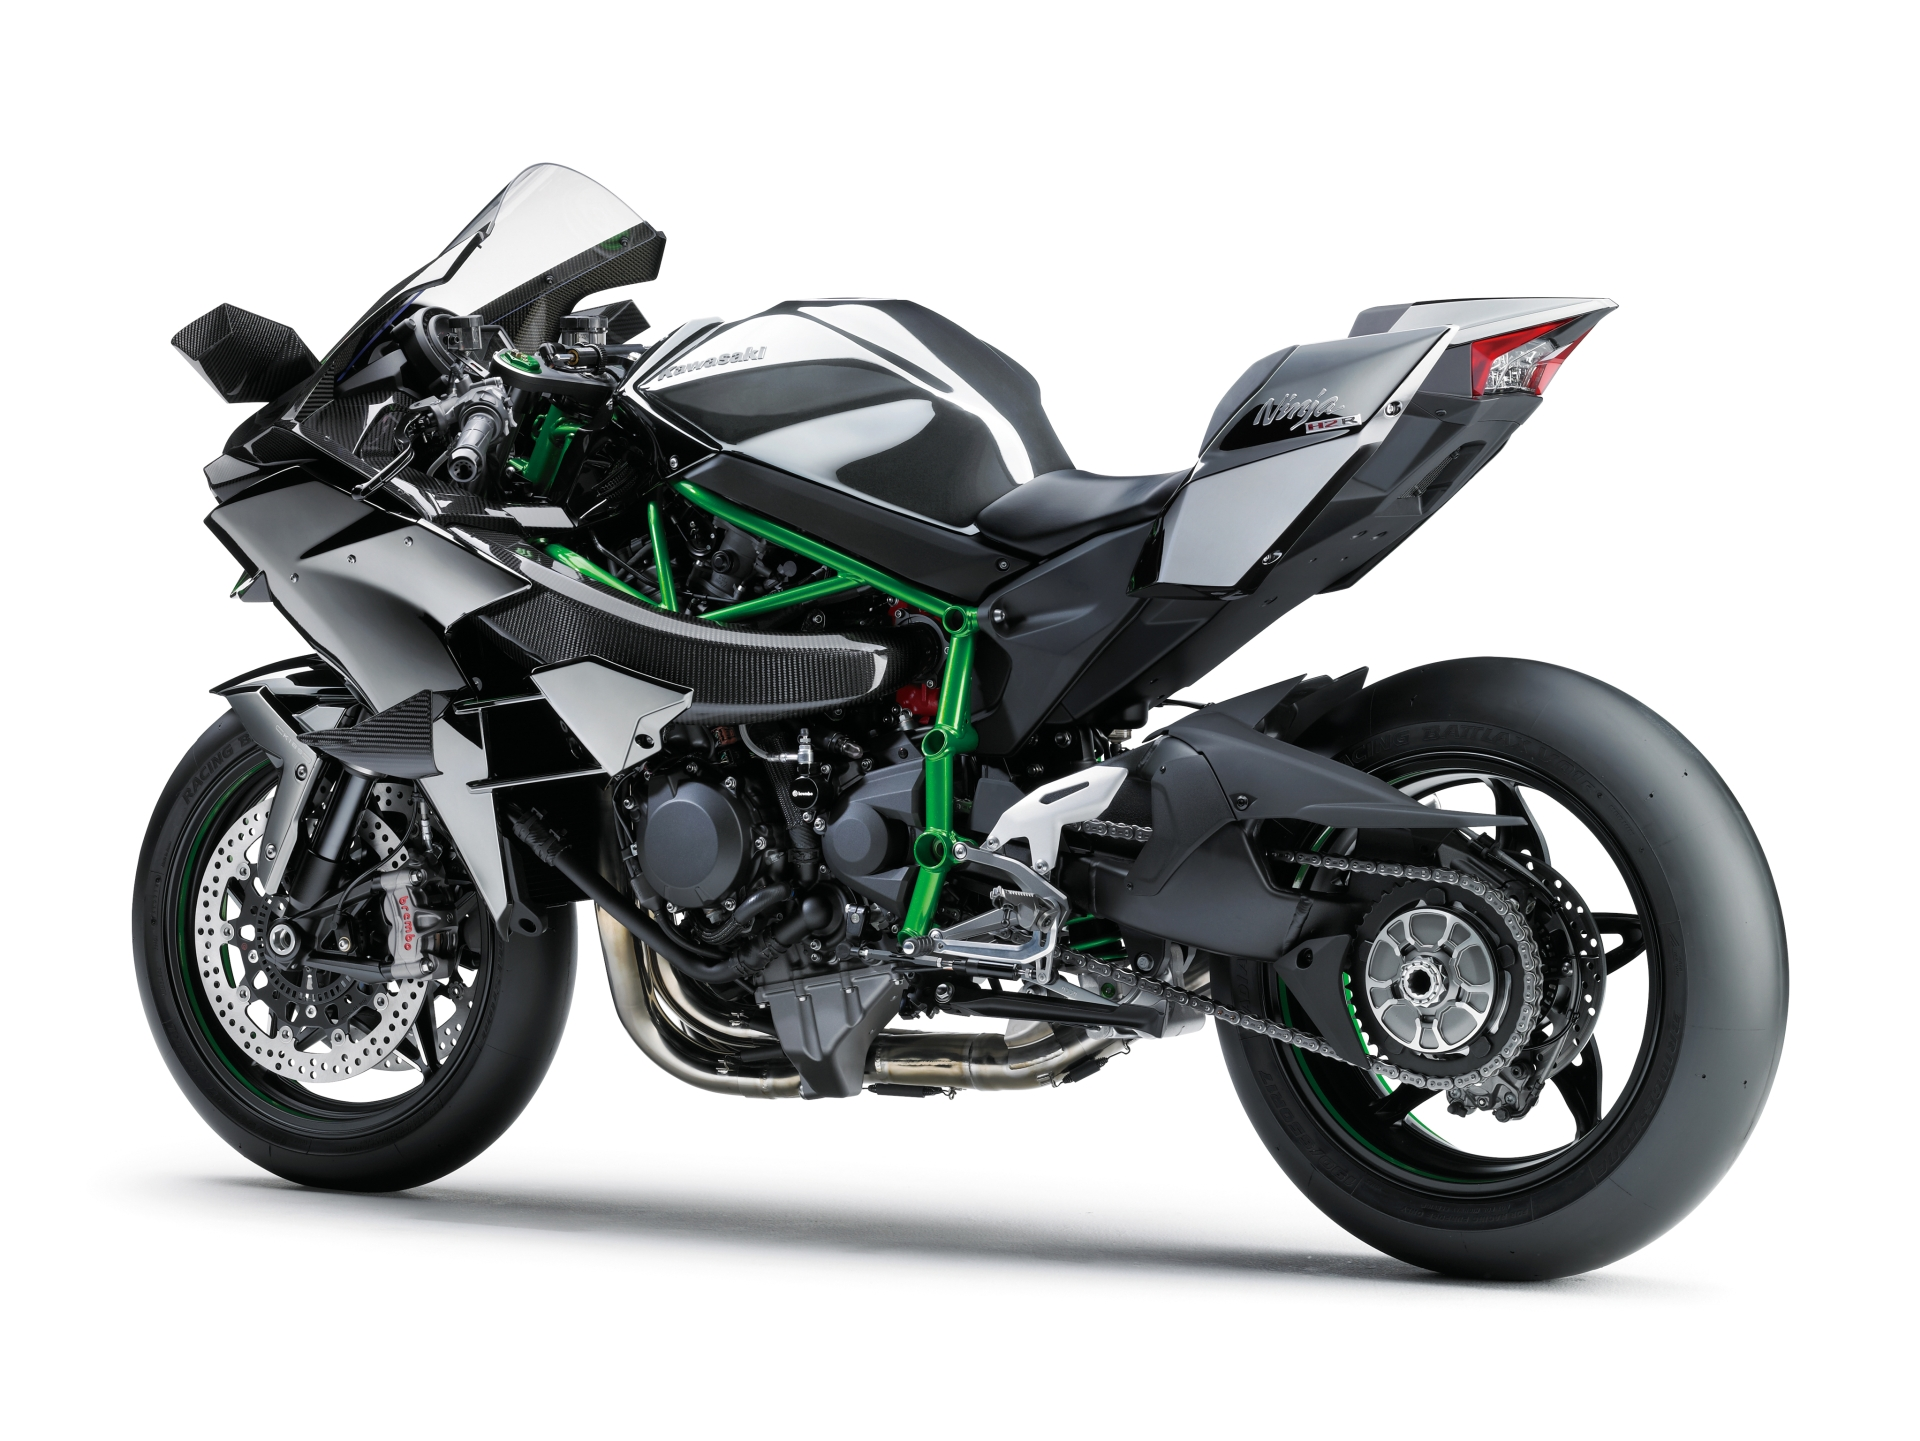 kawasaki ninja h2 and h2r prices confirmed autoevolution. Black Bedroom Furniture Sets. Home Design Ideas